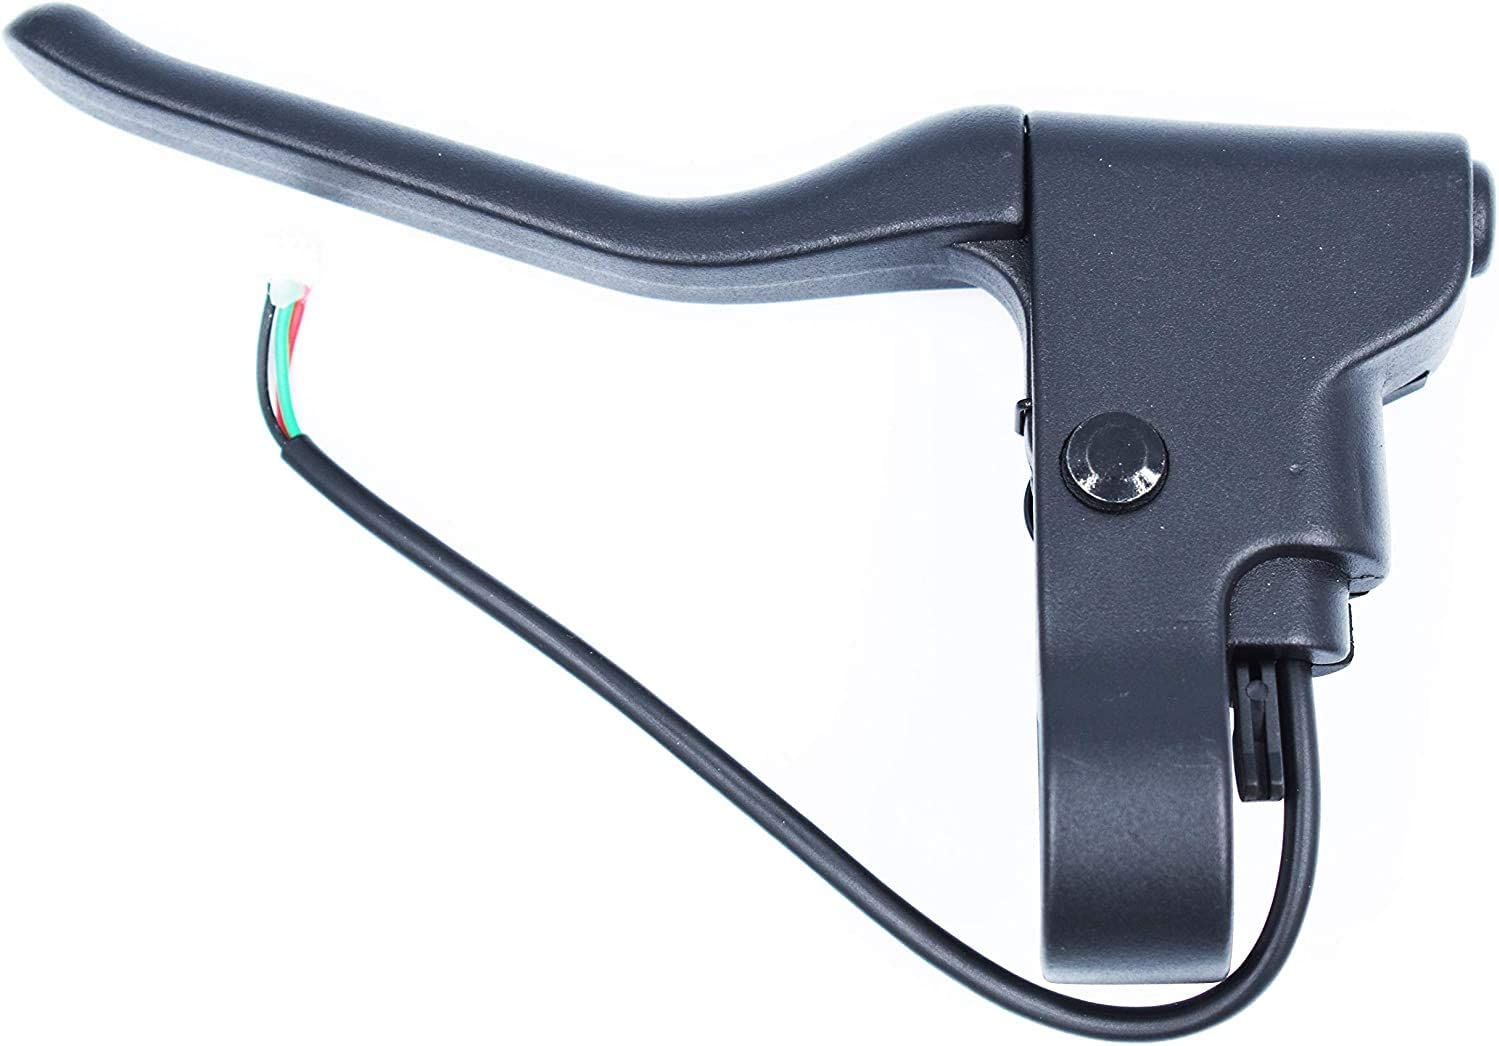 kekprint Brake Handle Lever For Xiaomi M365 Pro Electric Scooter